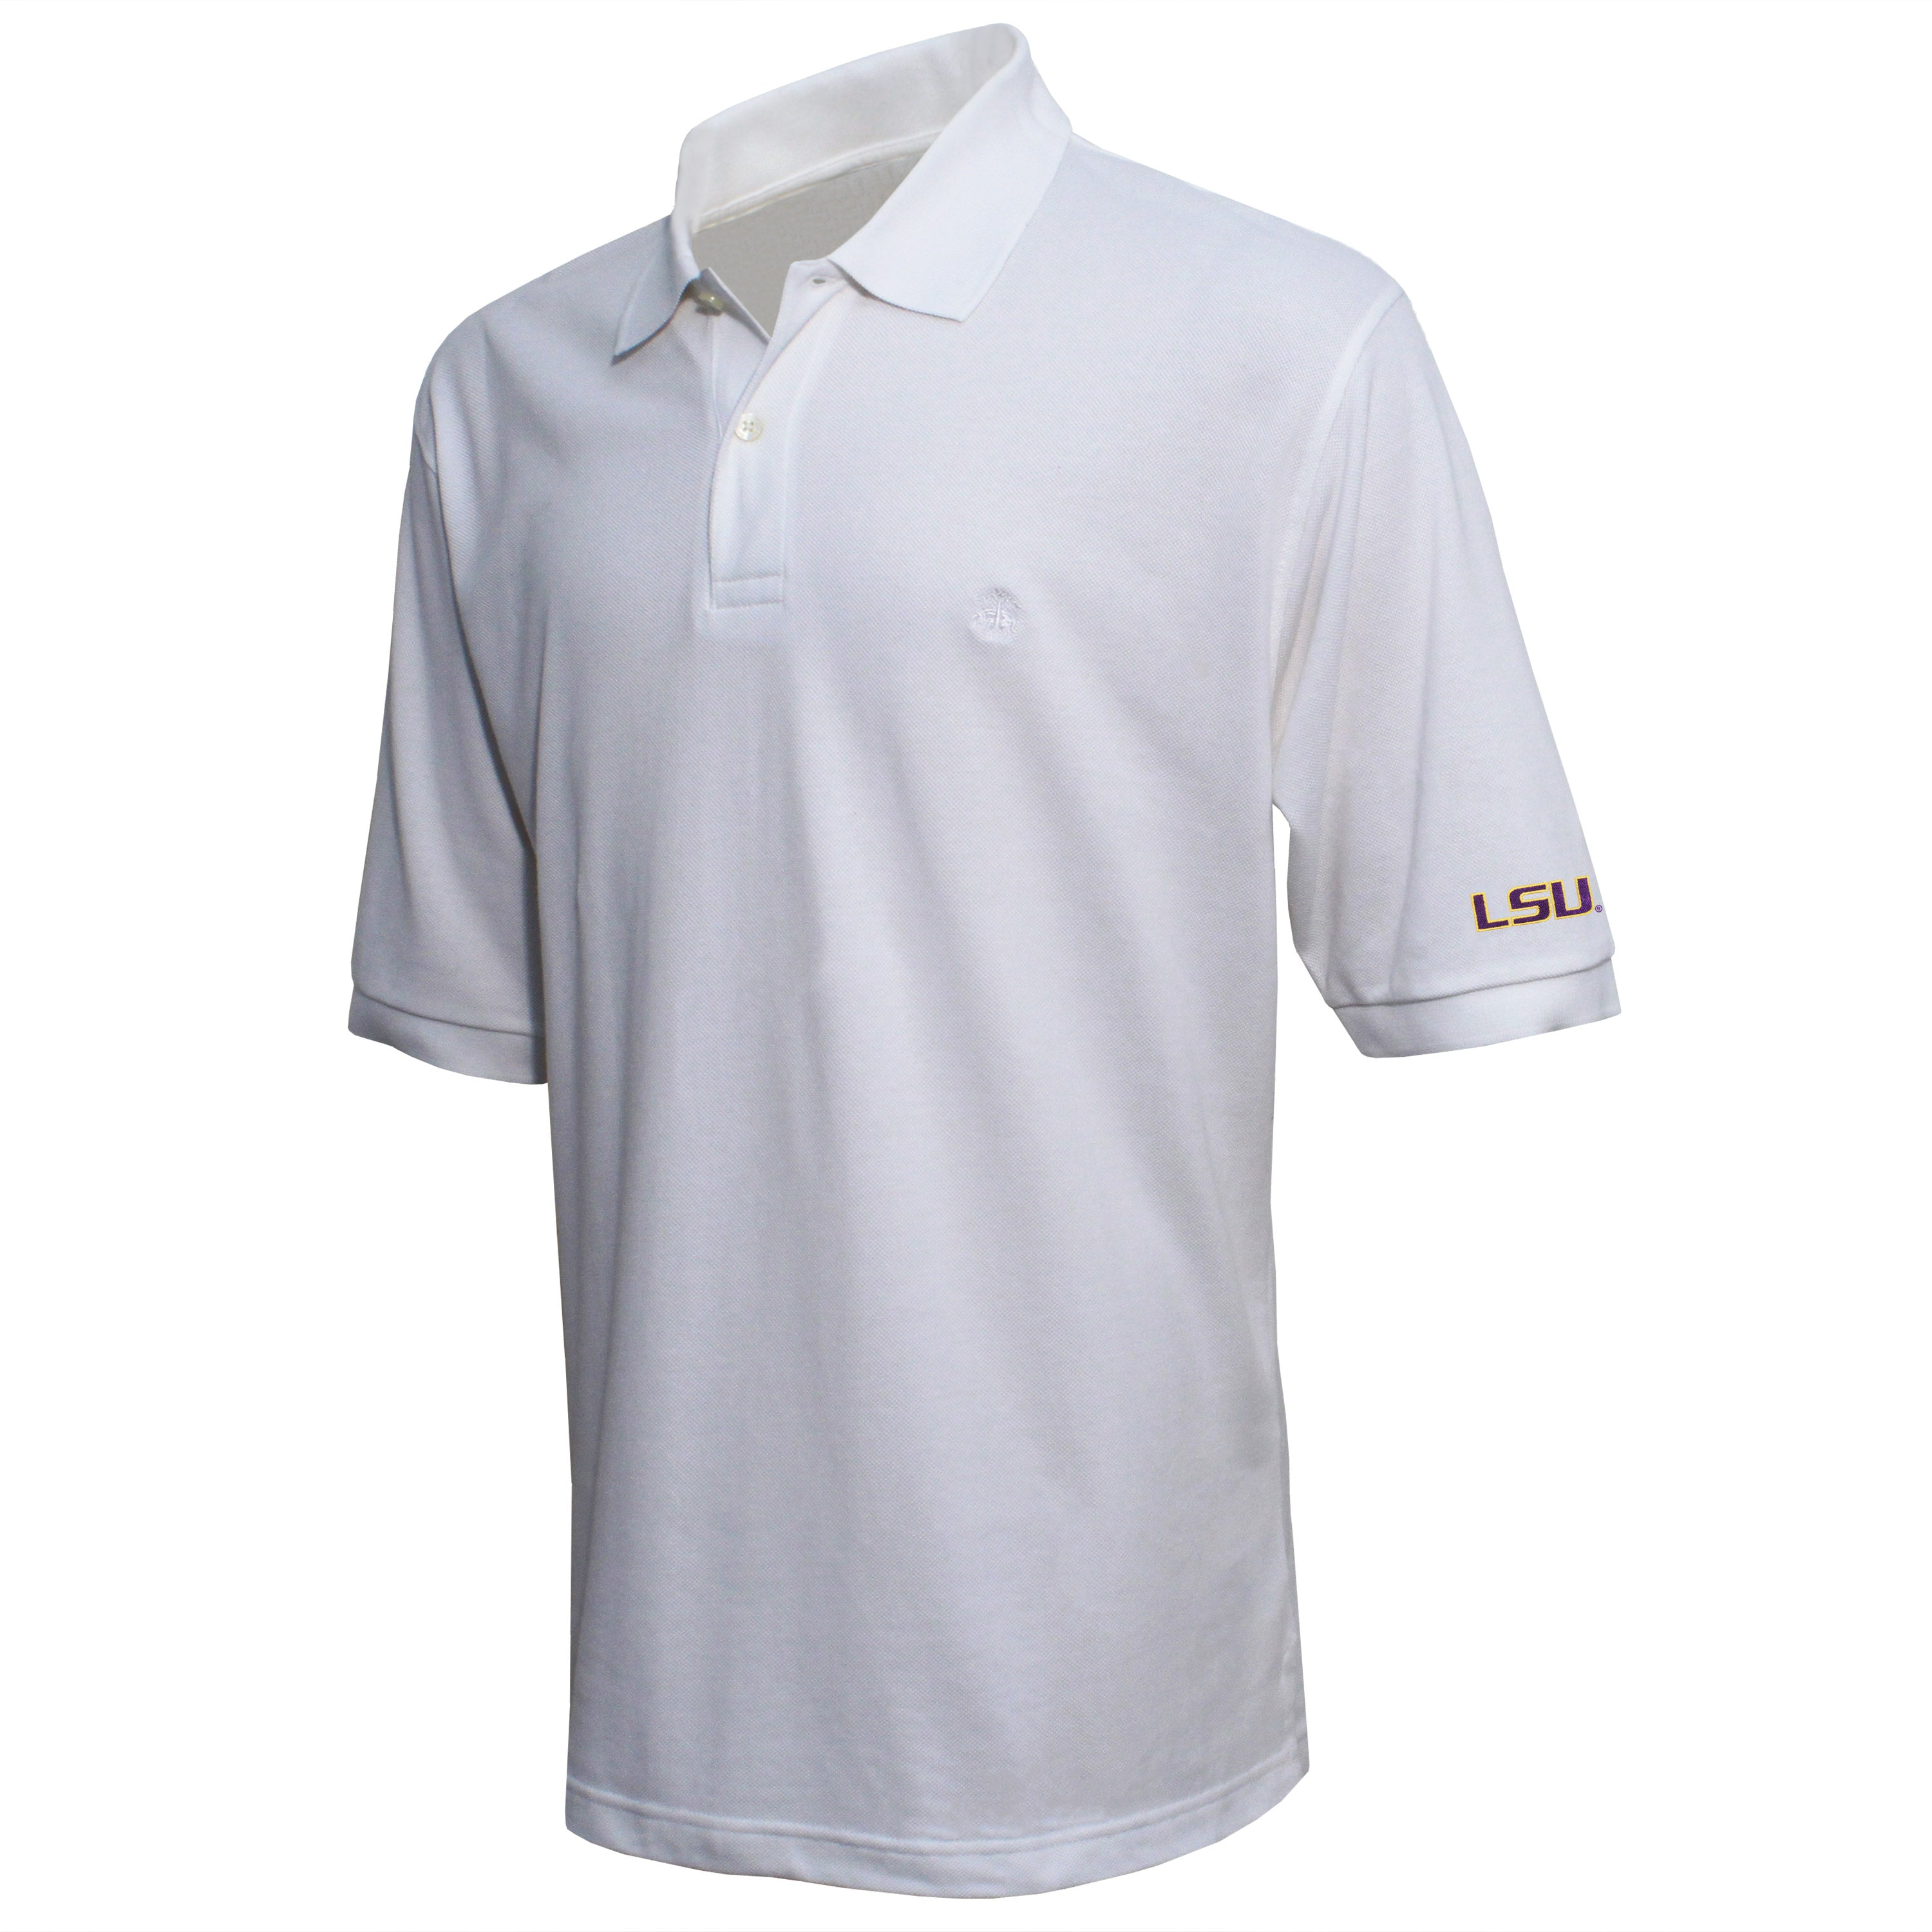 Brooks Brothers Louisiana State Men's White Original Fit Pique Polo Shirt